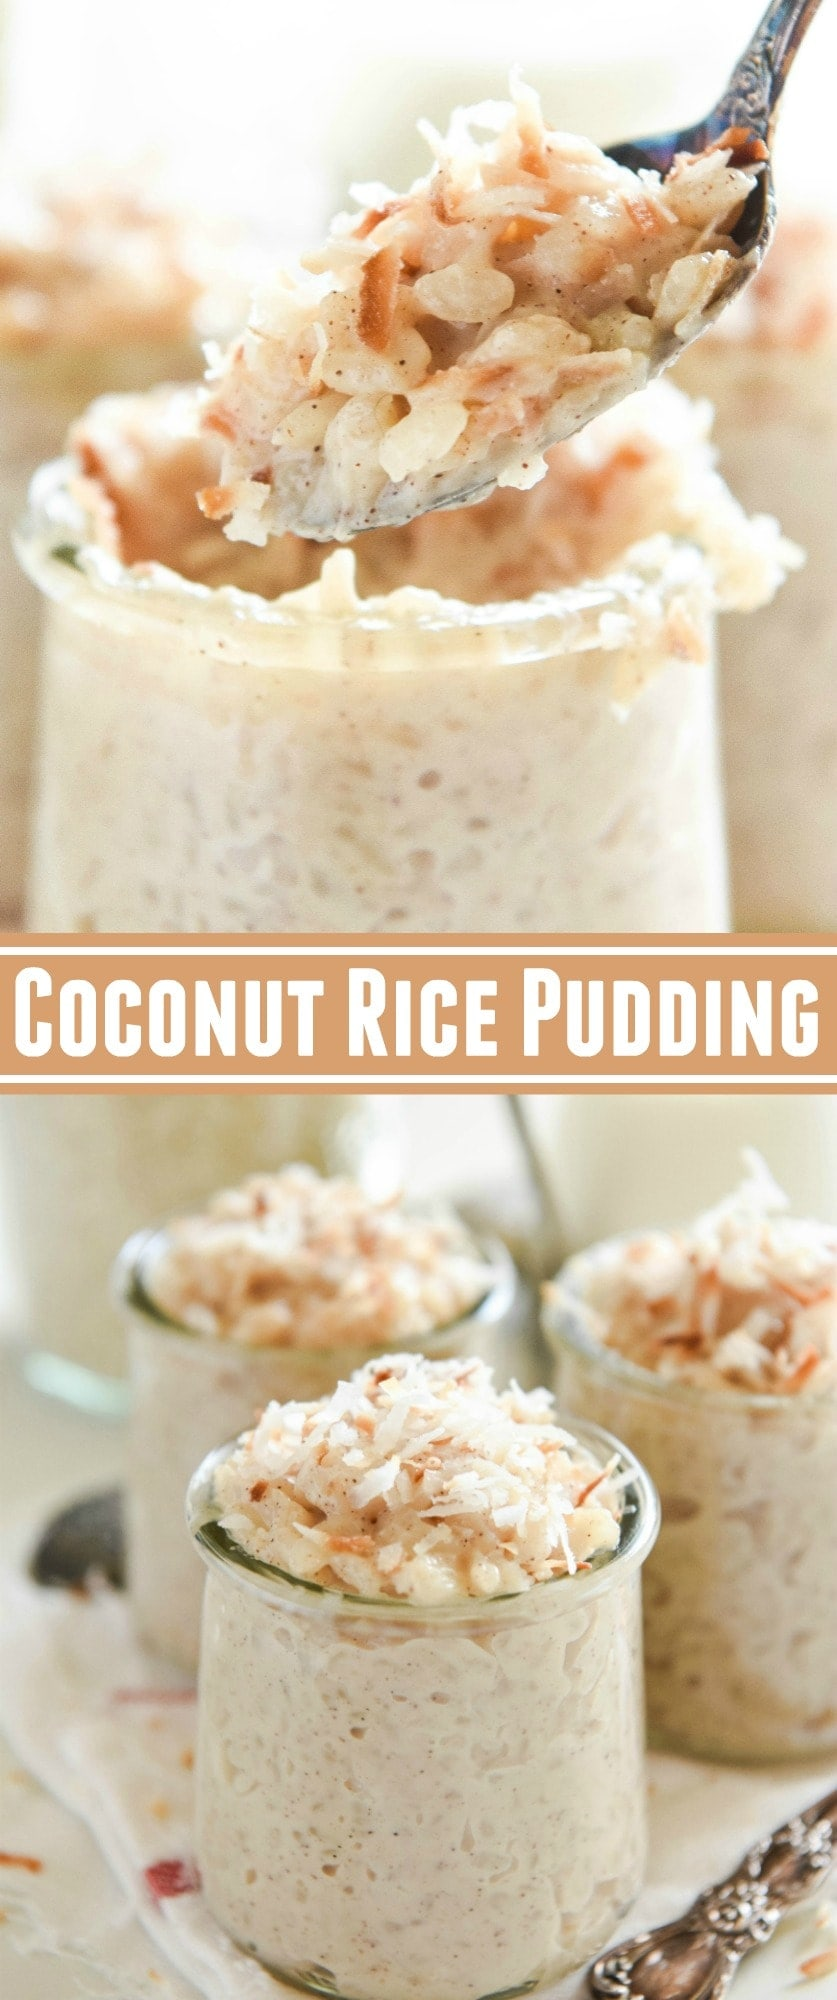 Coconut Rice Pudding: A Disney Cruise Copycat Recipe! Made extra creamy with coconut milk!